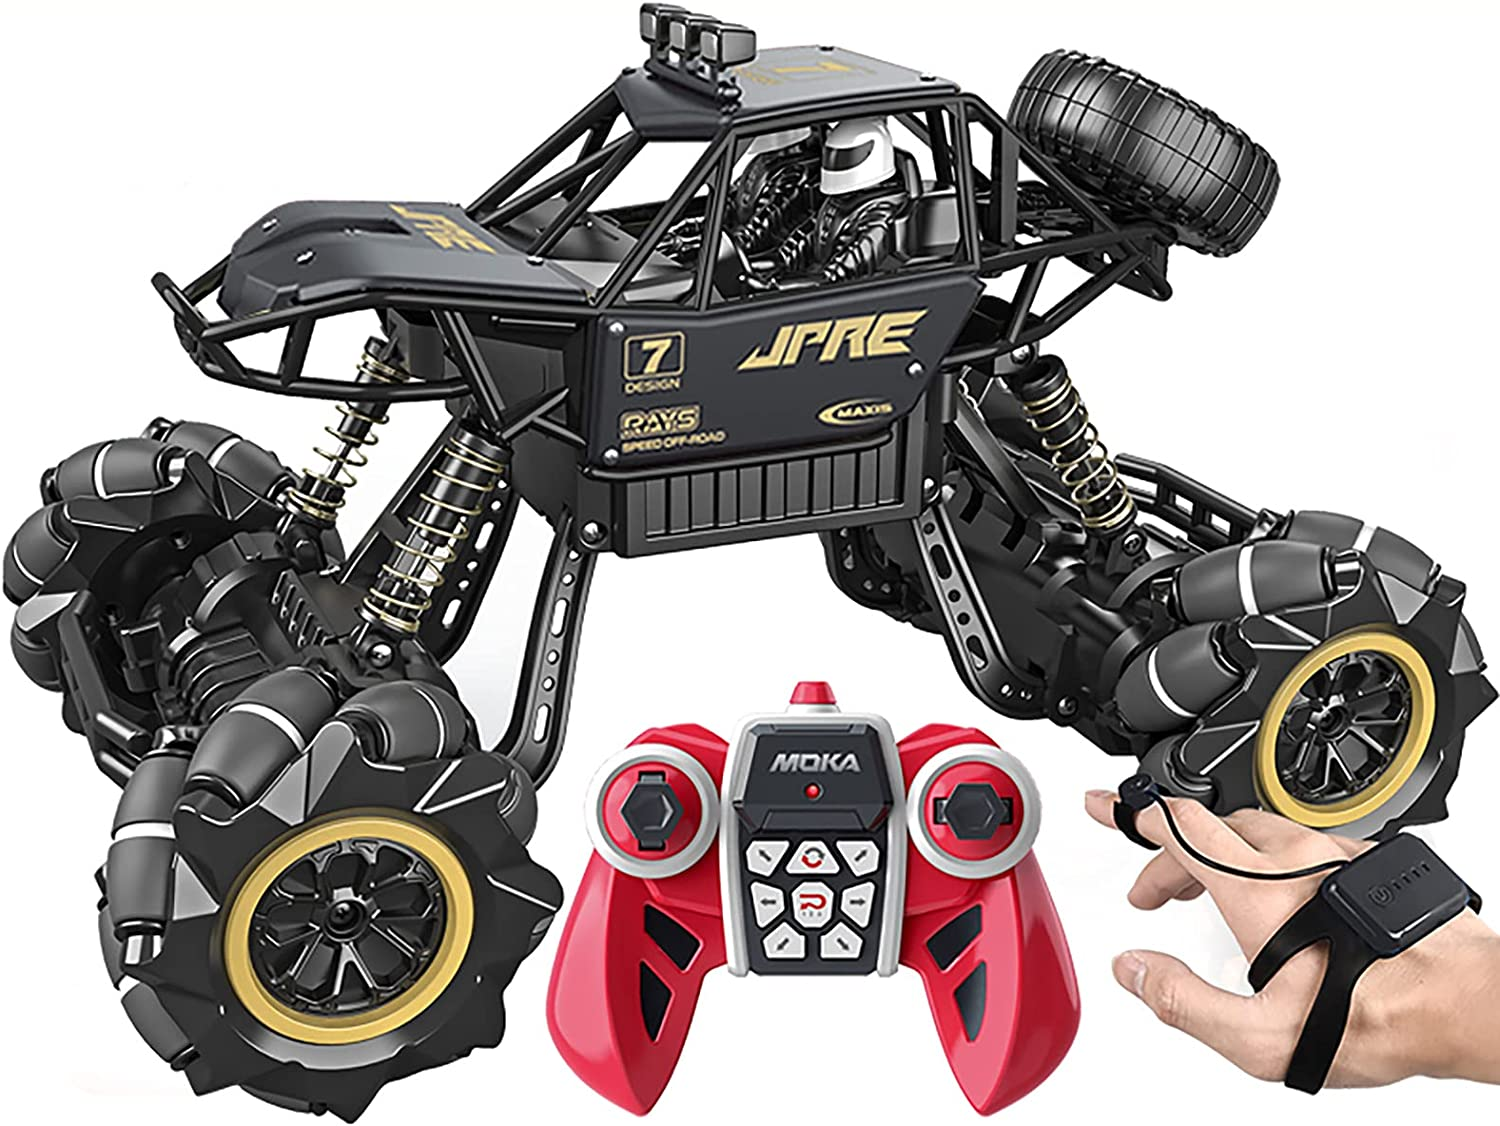 MYAOU High Speed RC Monster Trucks 4WD Road NEW before selling ☆ Remote Off Control 100% quality warranty